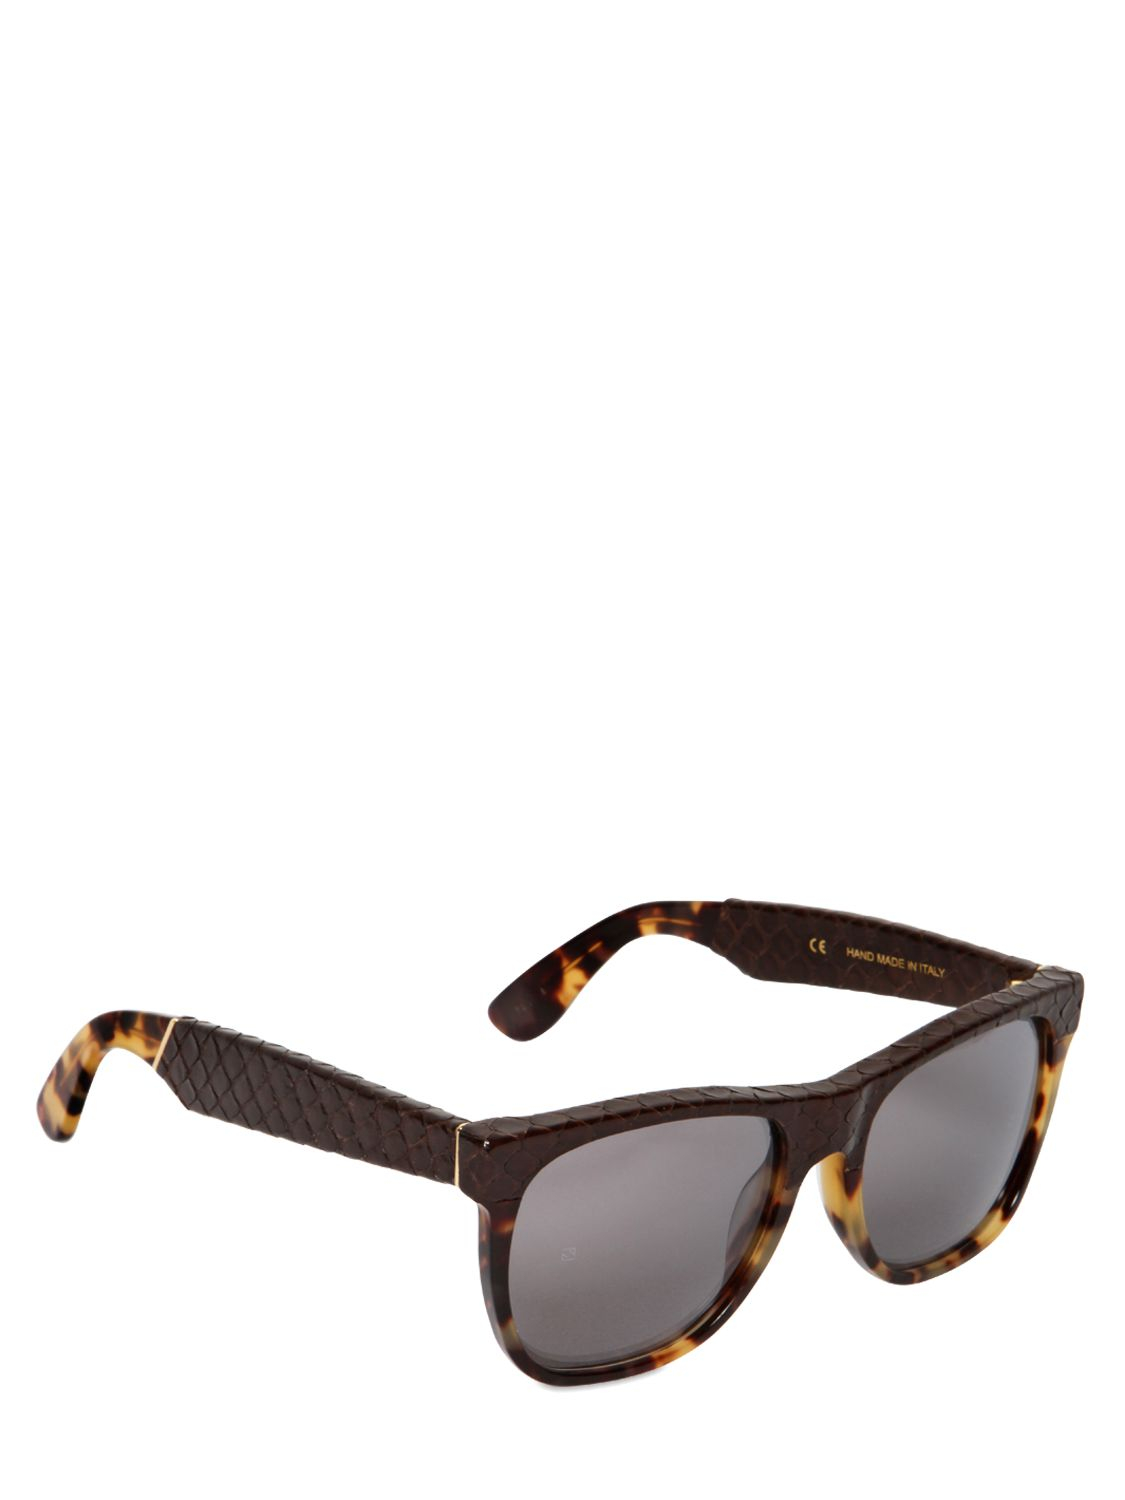 Retrosuperfuture Classic Snake Printed Leather Sunglasses in Tortoise/Brown (Brown) for Men